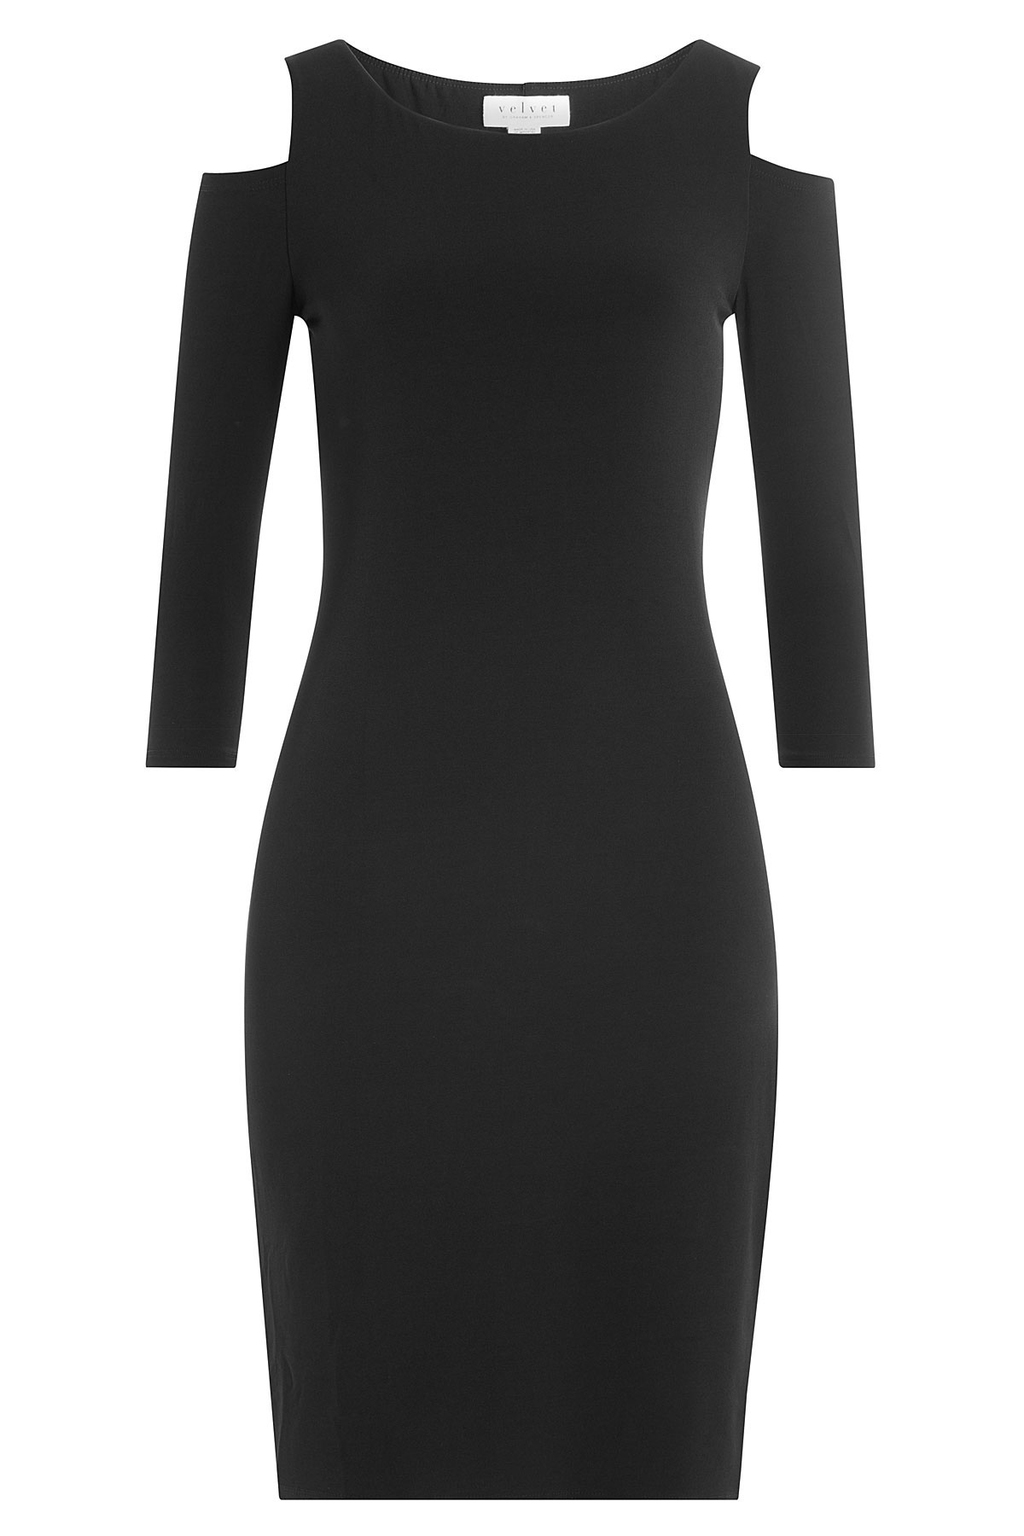 Jersey Dress With Cutout Shoulders Black - fit: tight; pattern: plain; style: bodycon; predominant colour: black; occasions: evening; length: just above the knee; fibres: polyester/polyamide - stretch; neckline: crew; shoulder detail: cut out shoulder; sleeve length: 3/4 length; sleeve style: standard; texture group: jersey - clingy; pattern type: fabric; season: a/w 2016; wardrobe: event